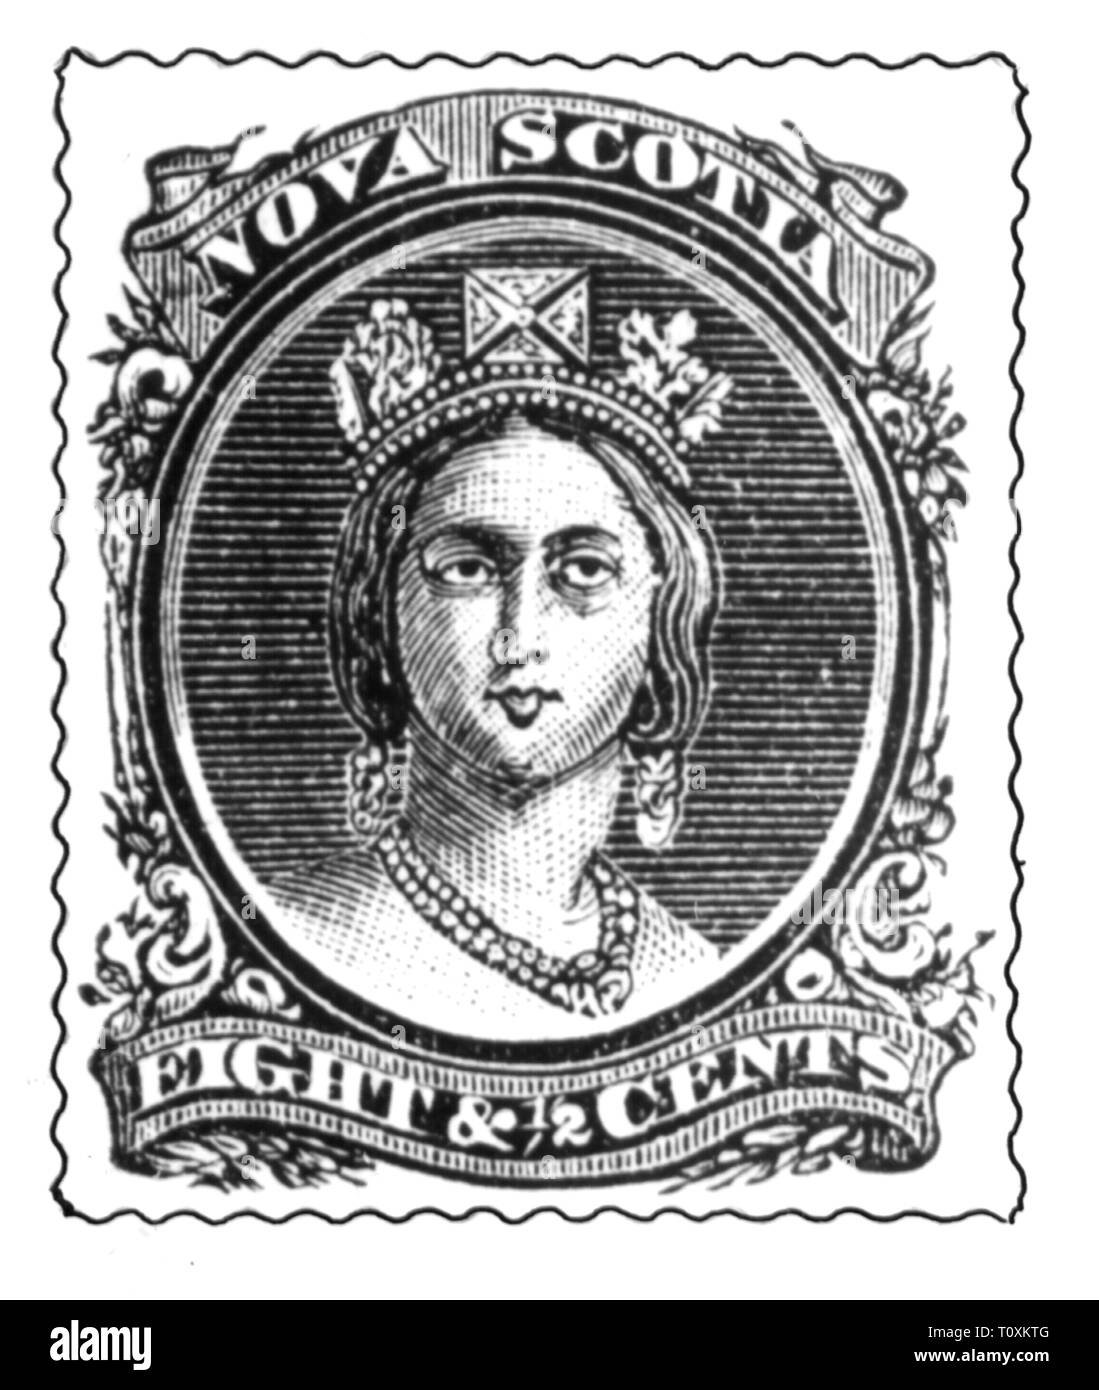 mail, postage stamps, Canada, Nova Scotia, 8 1/2 cent postage stamp, portrait of Queen Victoria I, date of issue: 1860, Additional-Rights-Clearance-Info-Not-Available - Stock Image